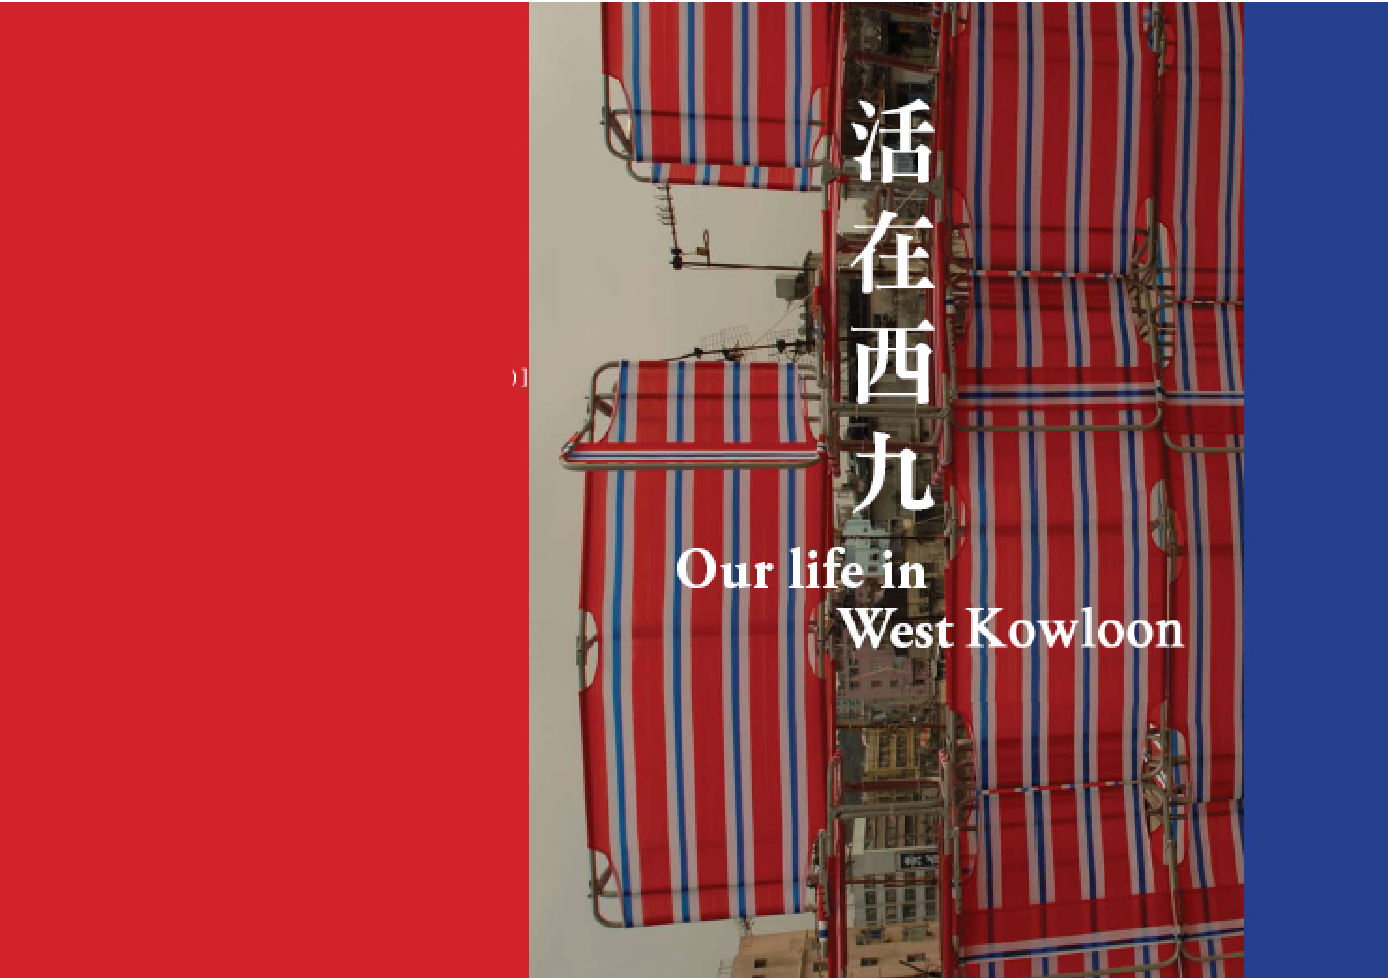 Our Life in West Kowloon